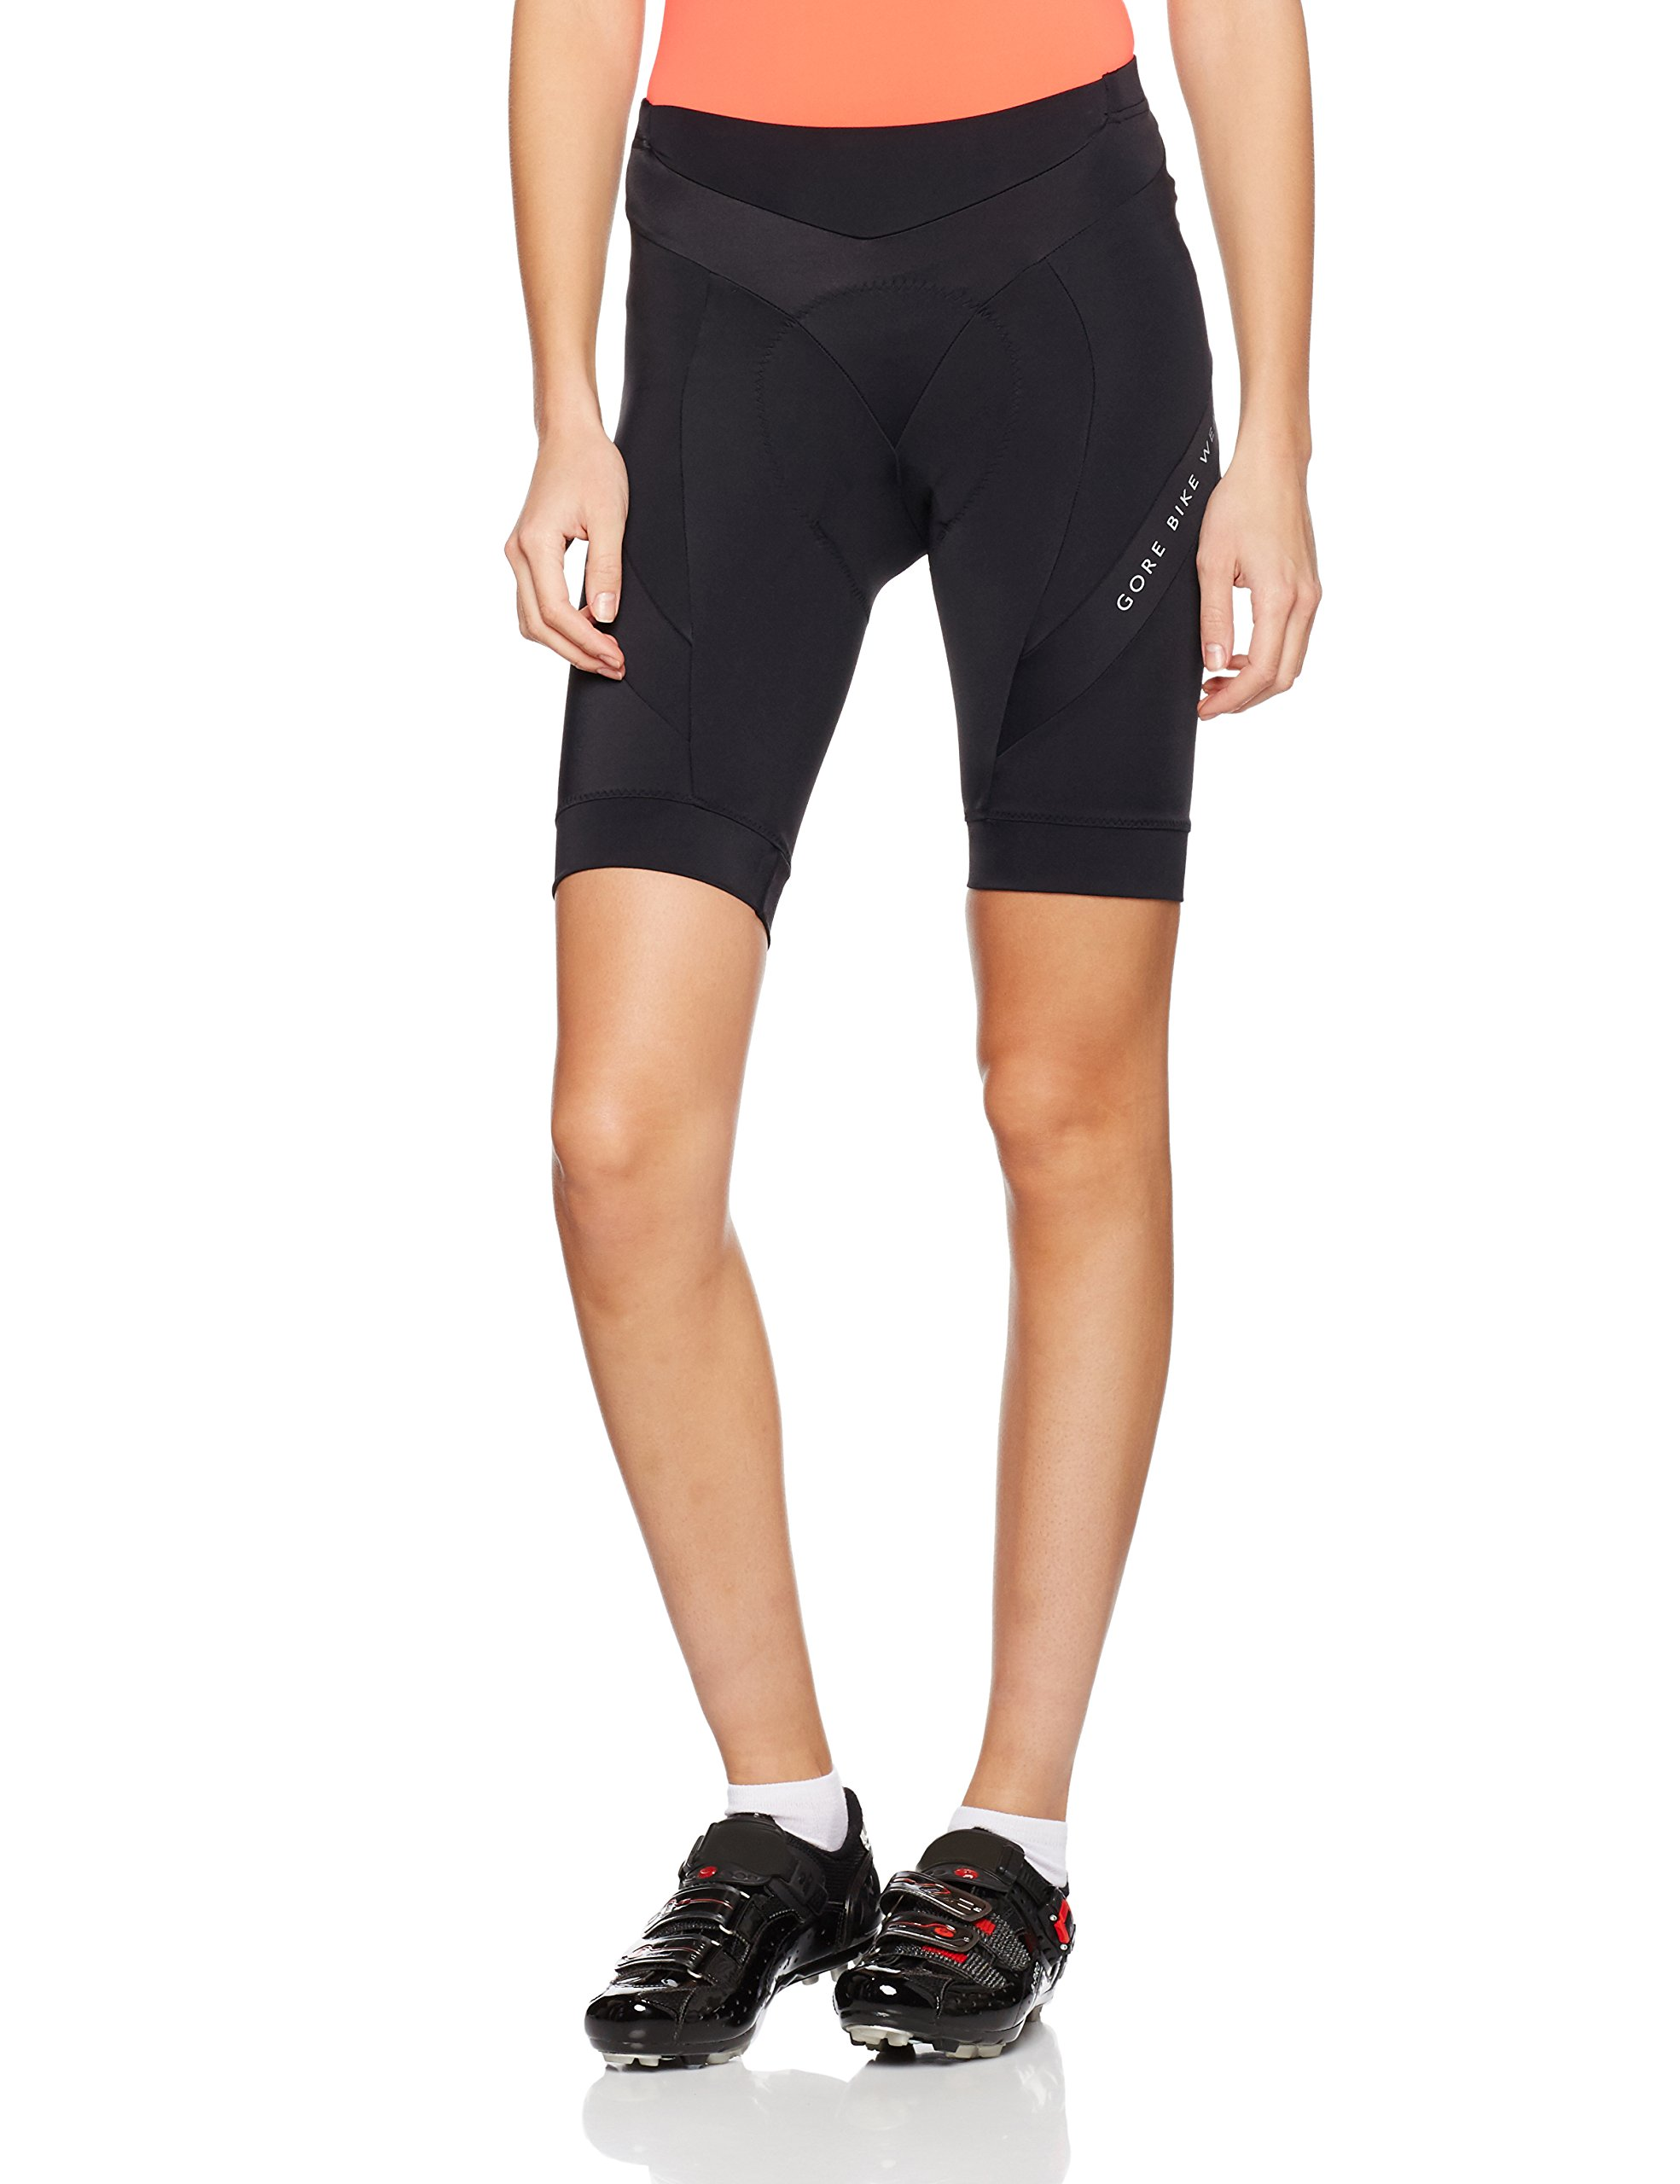 Gore Bike WEAR Women's Bike Shorts, Seat Padding, Breathable, Gore Selected Fabrics, Power Lady Tights Short+, Size: M, Black, TPOWRL